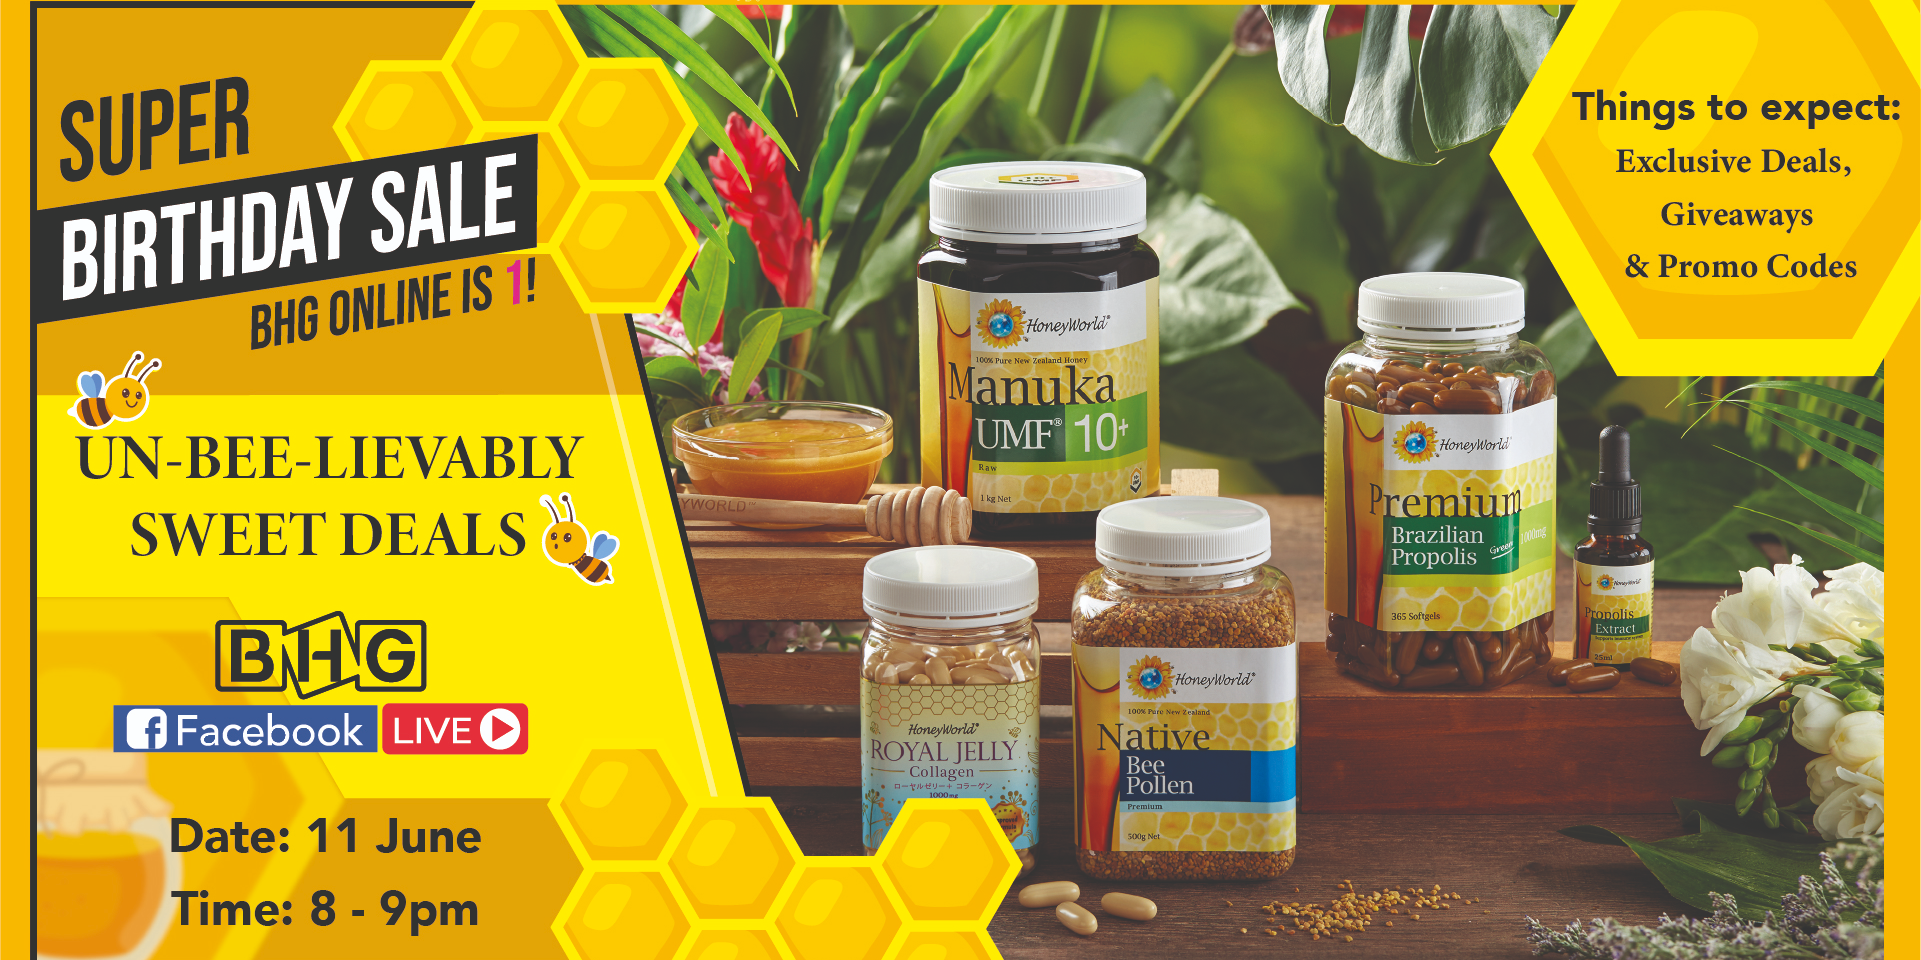 Un-BEE-lievably Sweet Deals, Giveaways, Promo Codes & More – BHG x HoneyWorld Live Stream